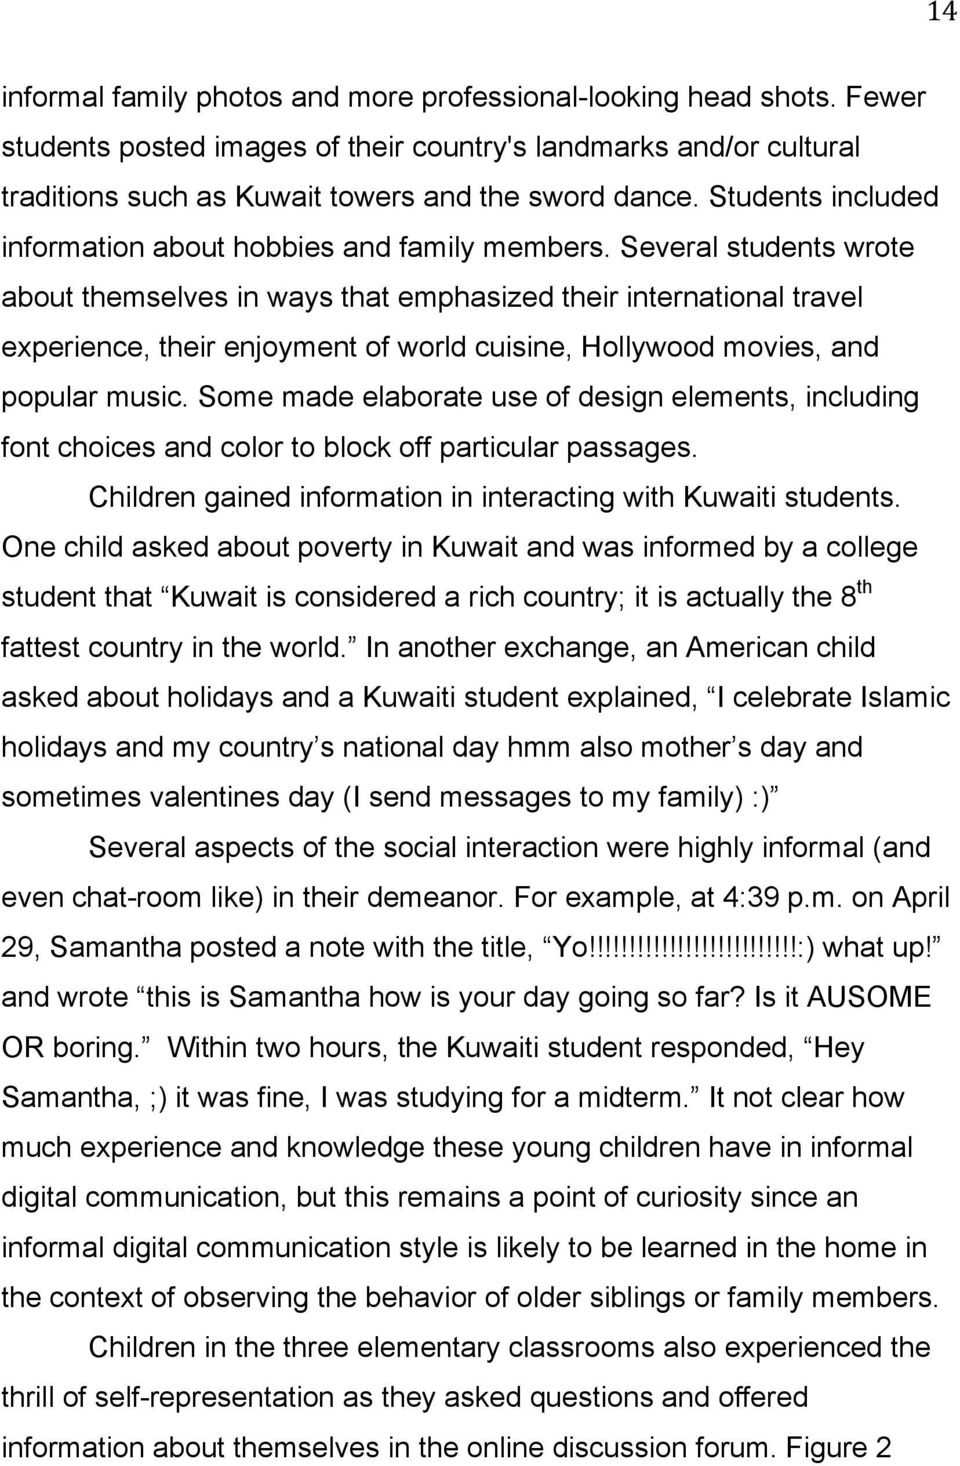 Several students wrote about themselves in ways that emphasized their international travel experience, their enjoyment of world cuisine, Hollywood movies, and popular music.